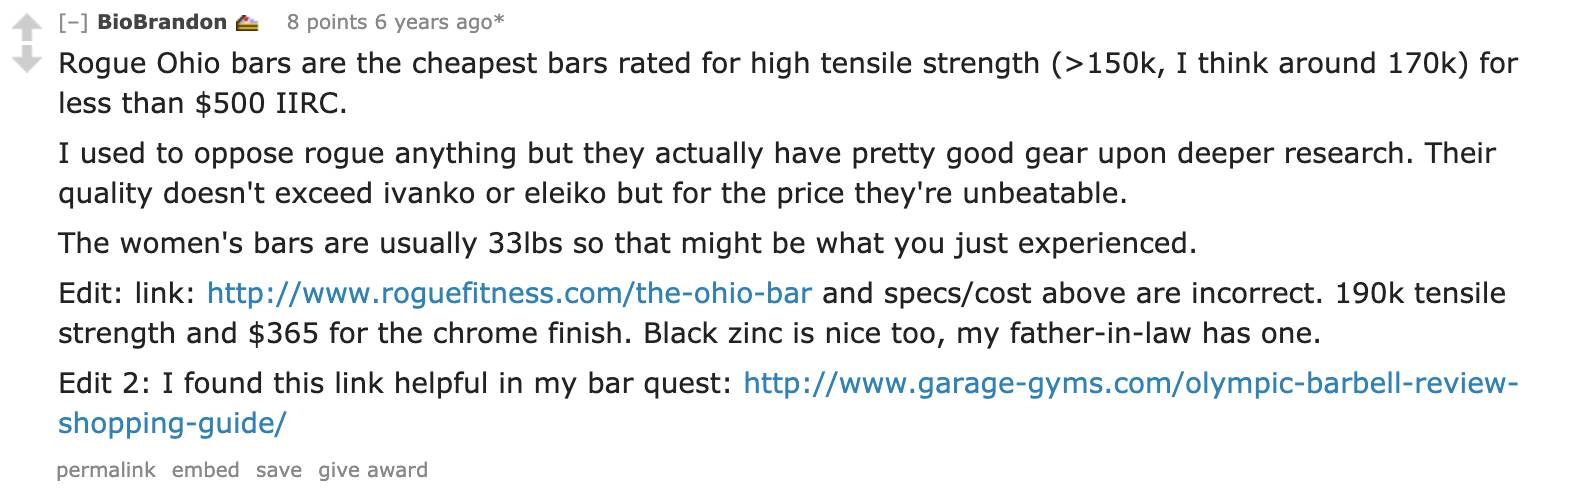 Reddit user BioBrandon details why Rogue Ohio bars are the cheapest bars rated for high tensile strength.